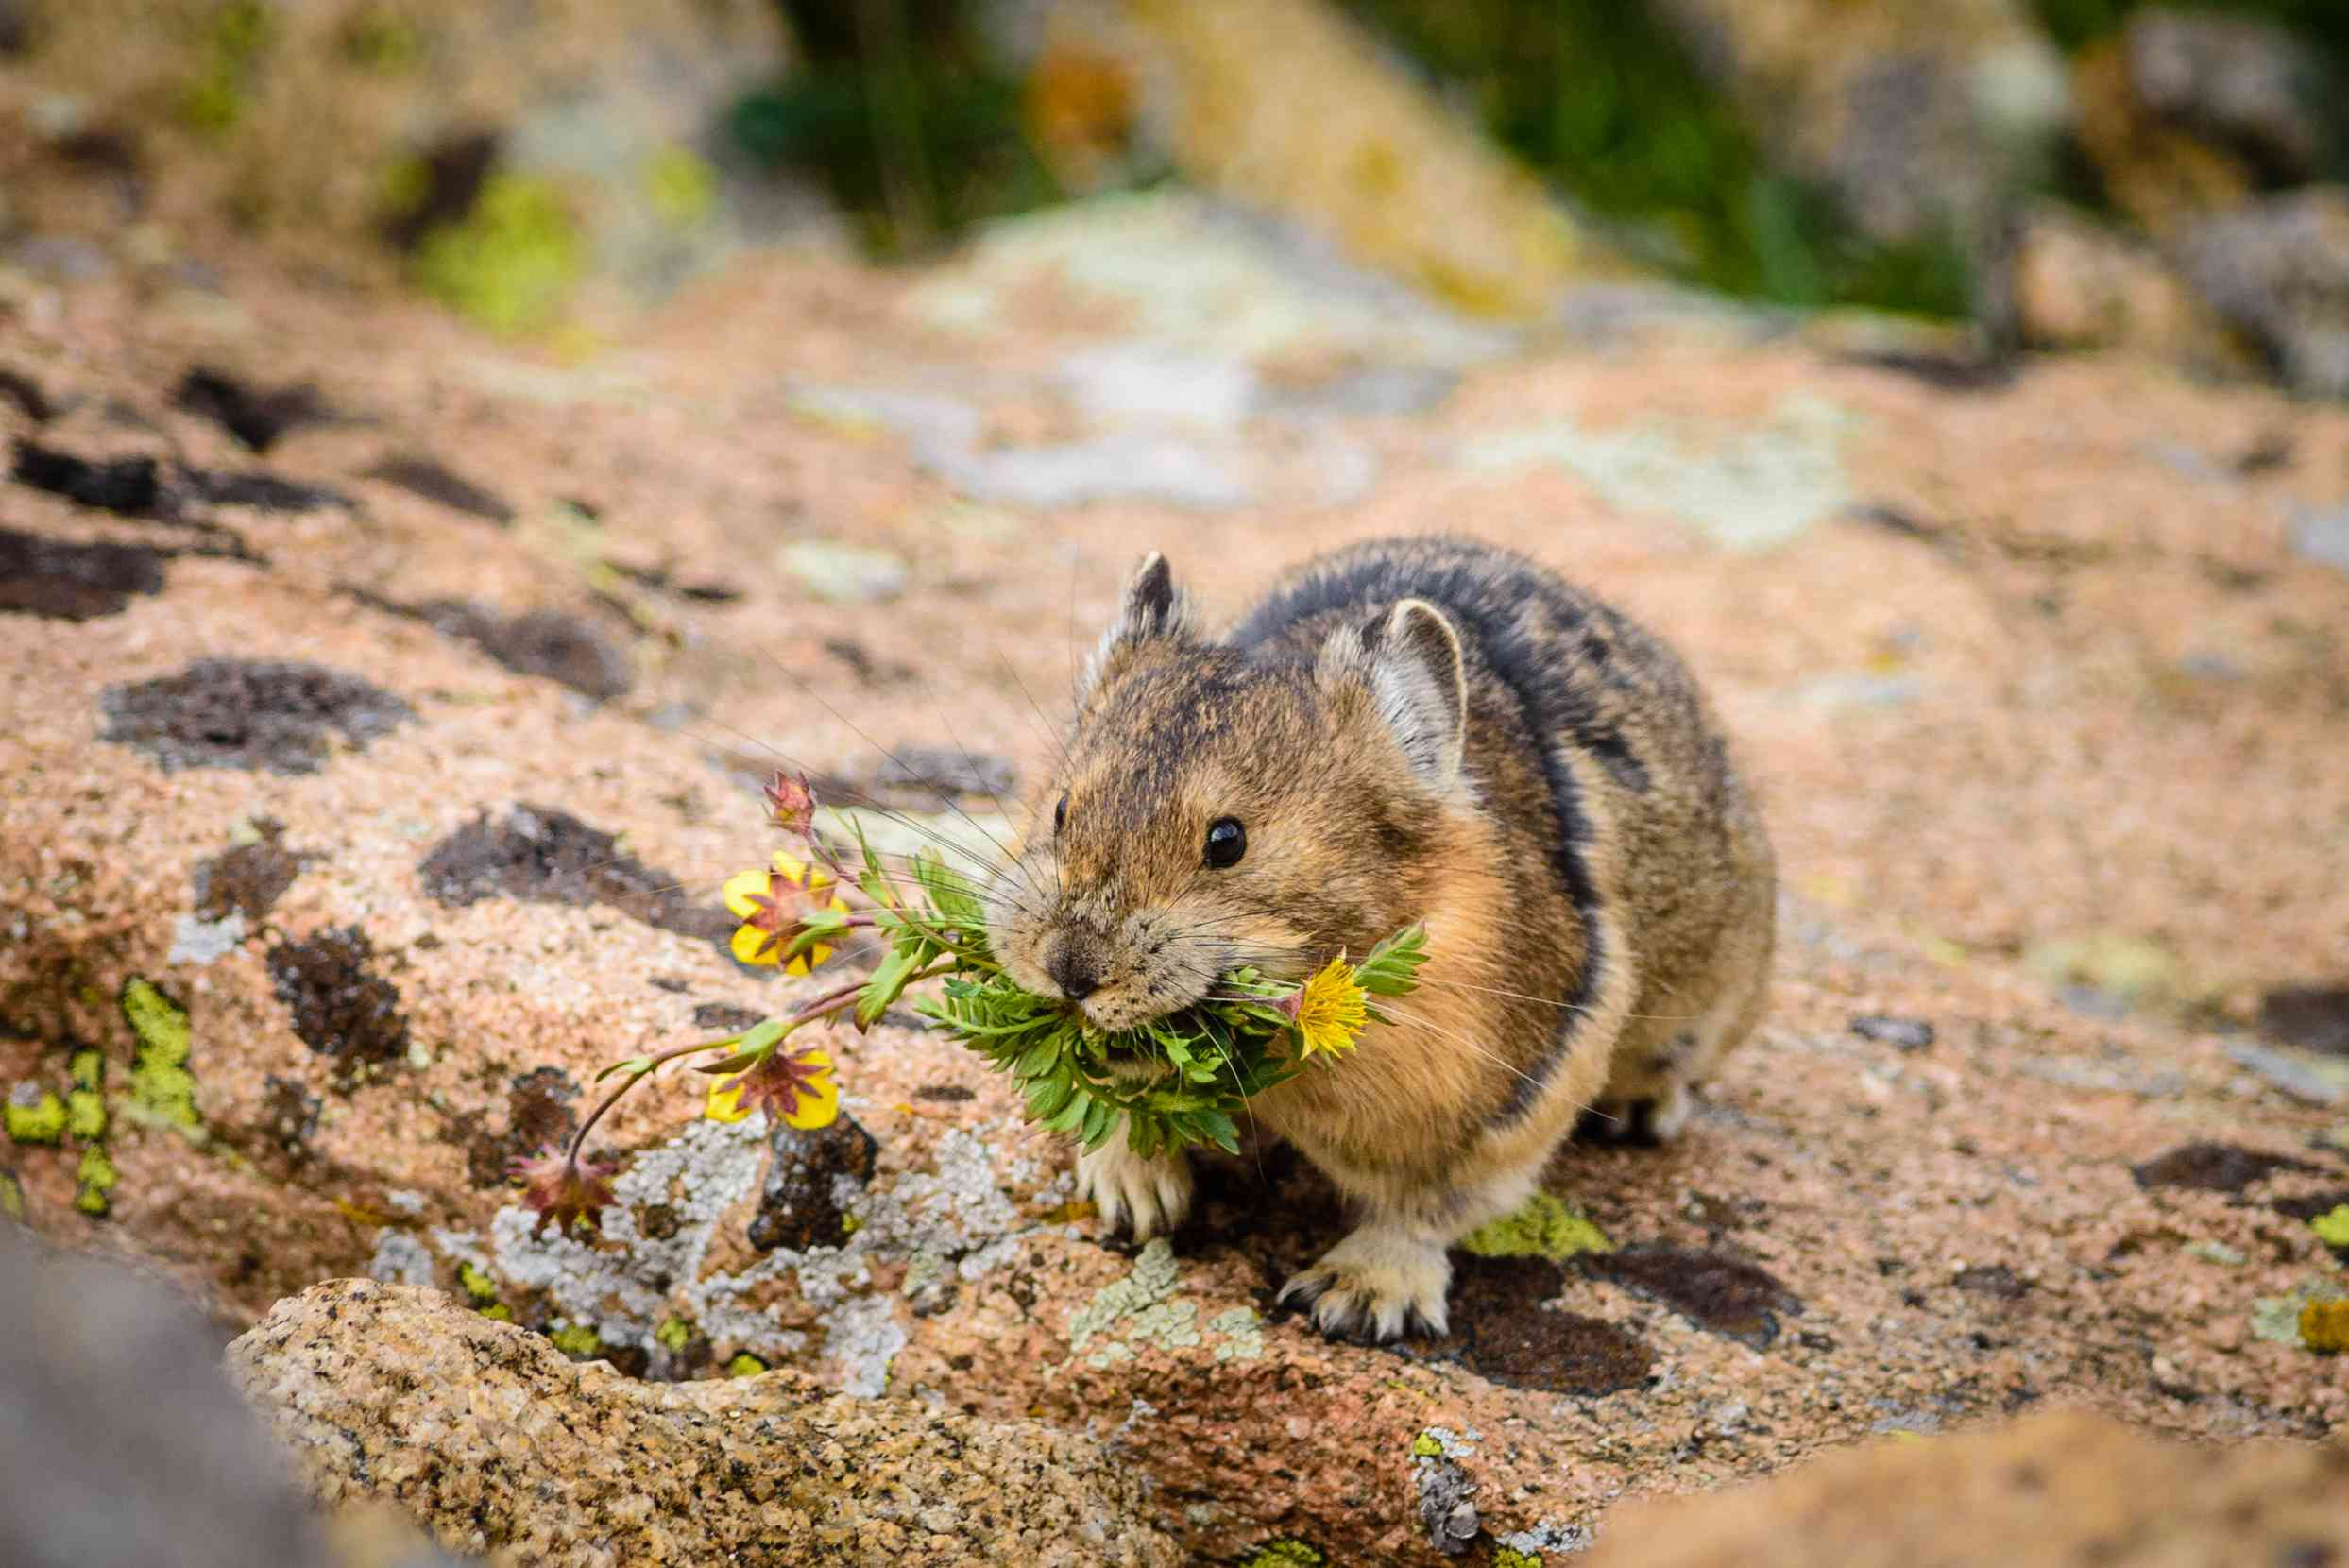 A pika on a rocky surface with flowers in its mouth